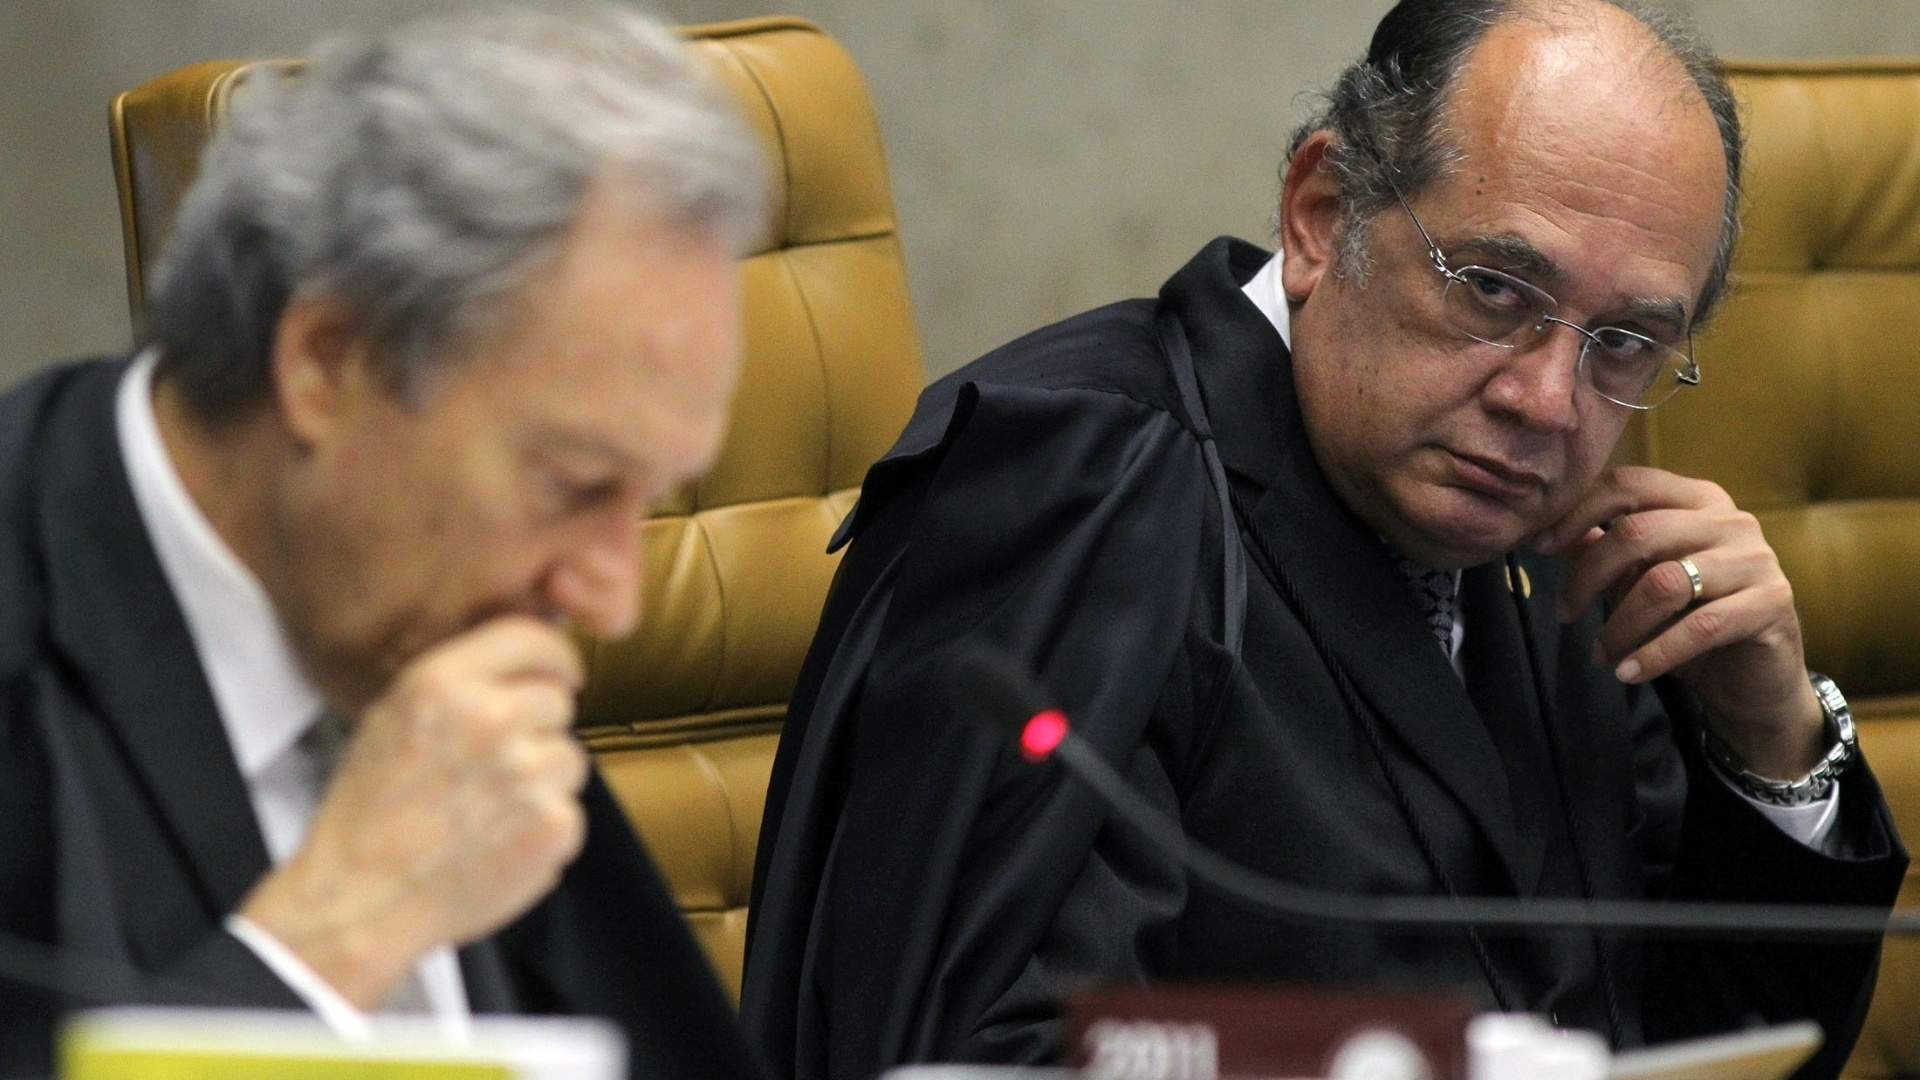 24.out.2012 - Em destaque, o ministro Gilmar Mendes observa o ministro-revisor Ricardo Lewandowski analisar o processo do julgamento do mensalo. Nesta quarta-feira, a maioria dos ministros do STF (Supremo Tribunal Federal) seguiu o revisor do processo e votou pela aplicao de uma pena de trs anos e um ms, alm de multa no valor de R$ 108 mil, para o publicitrio Marcos Valrio